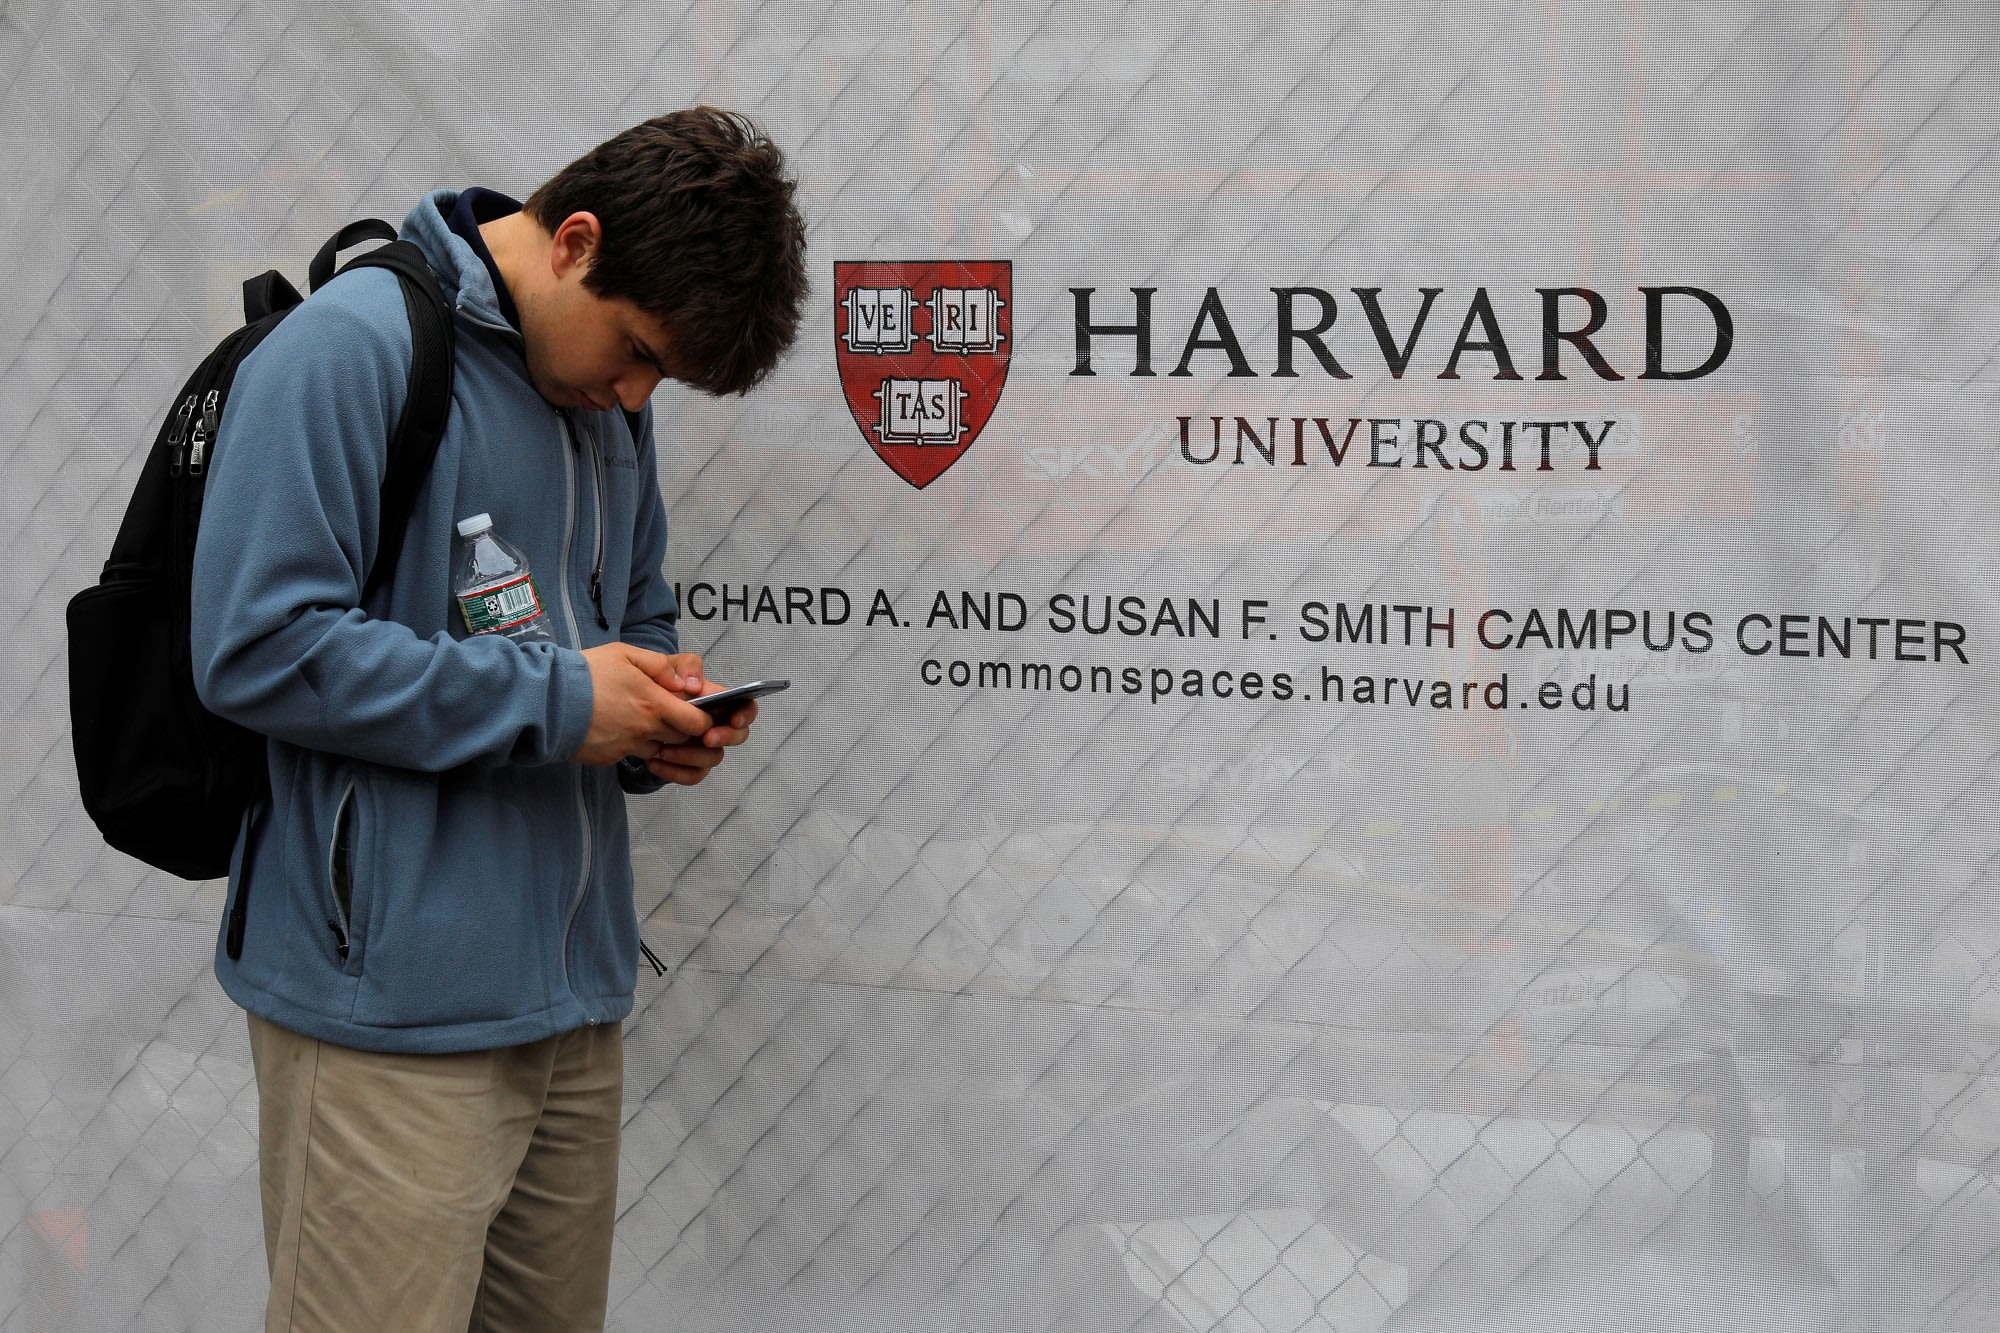 Coronavirus live updates: Harvard orders students to vacate